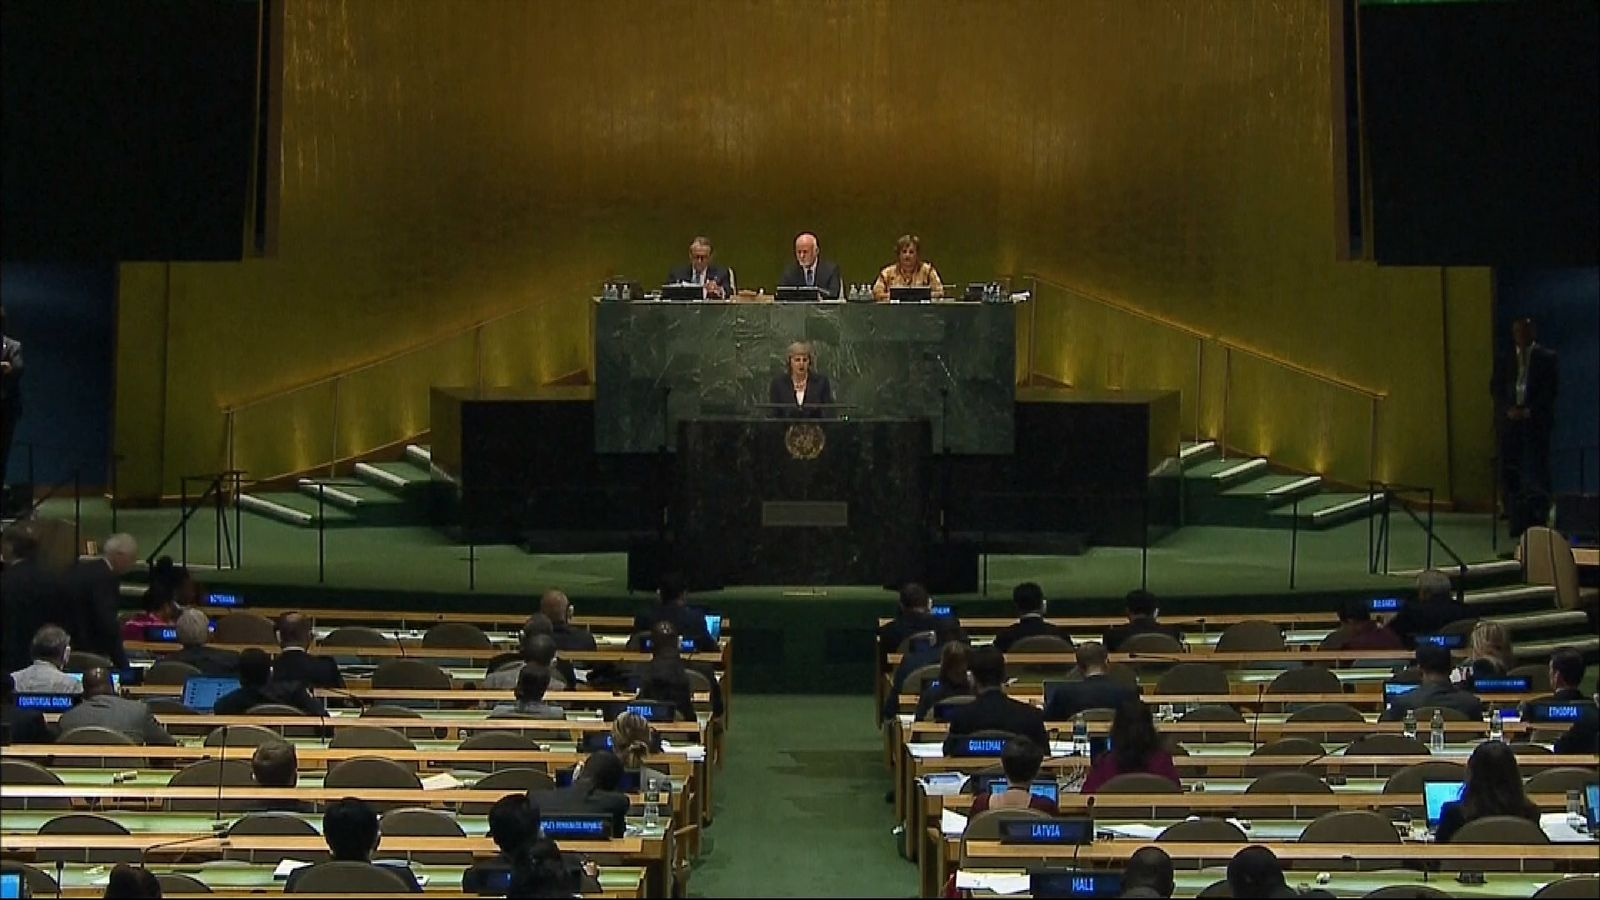 Theresa May addresses the UN